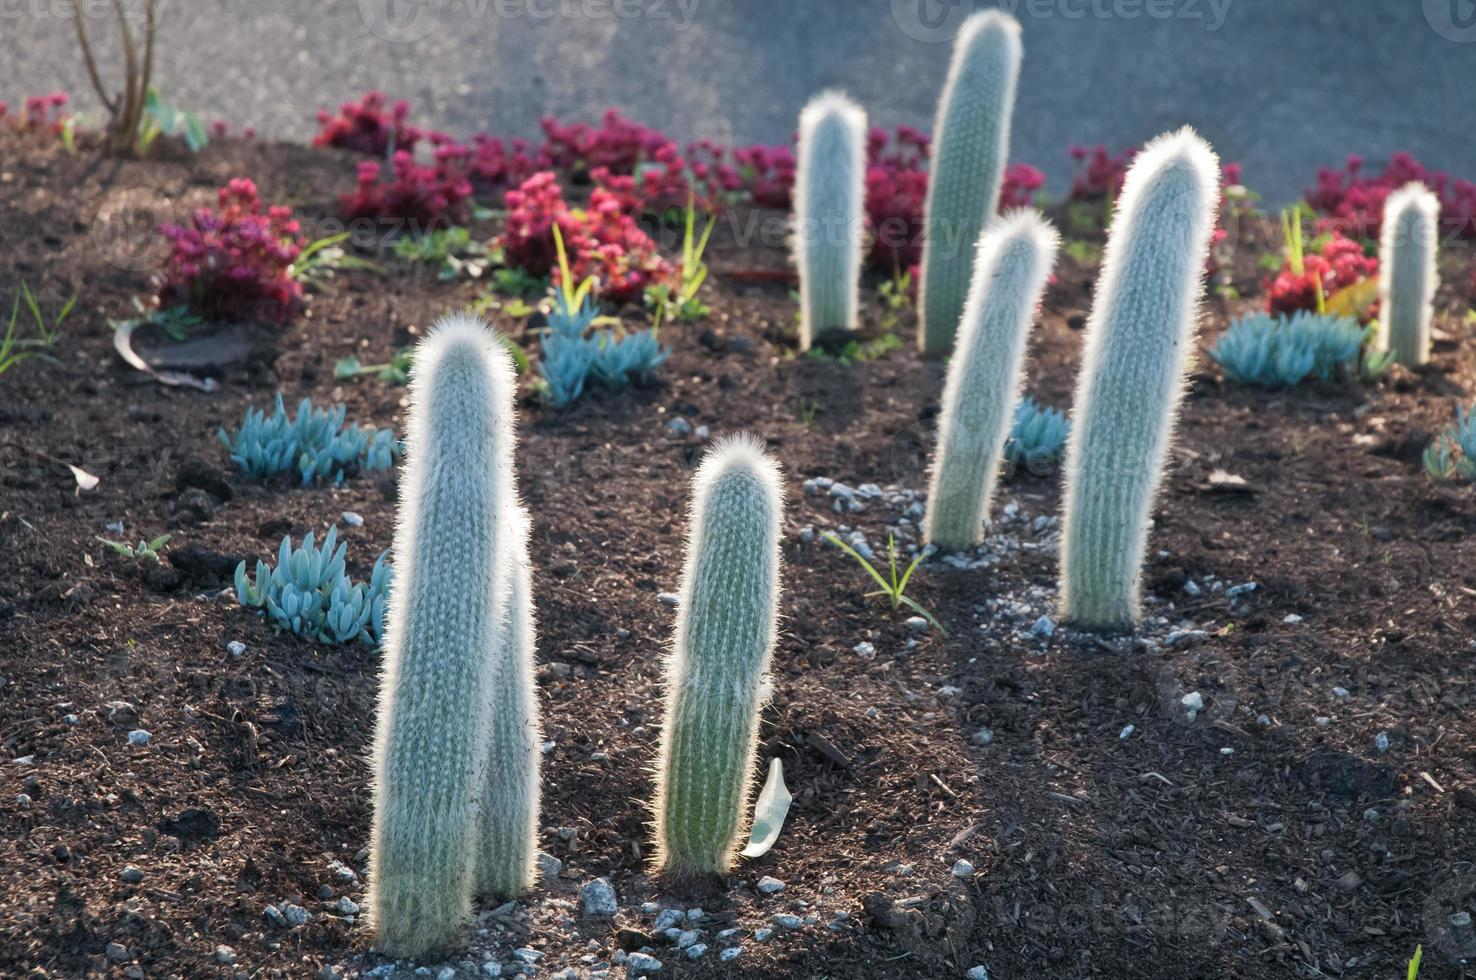 Spiky little cactus trees in the evening photo